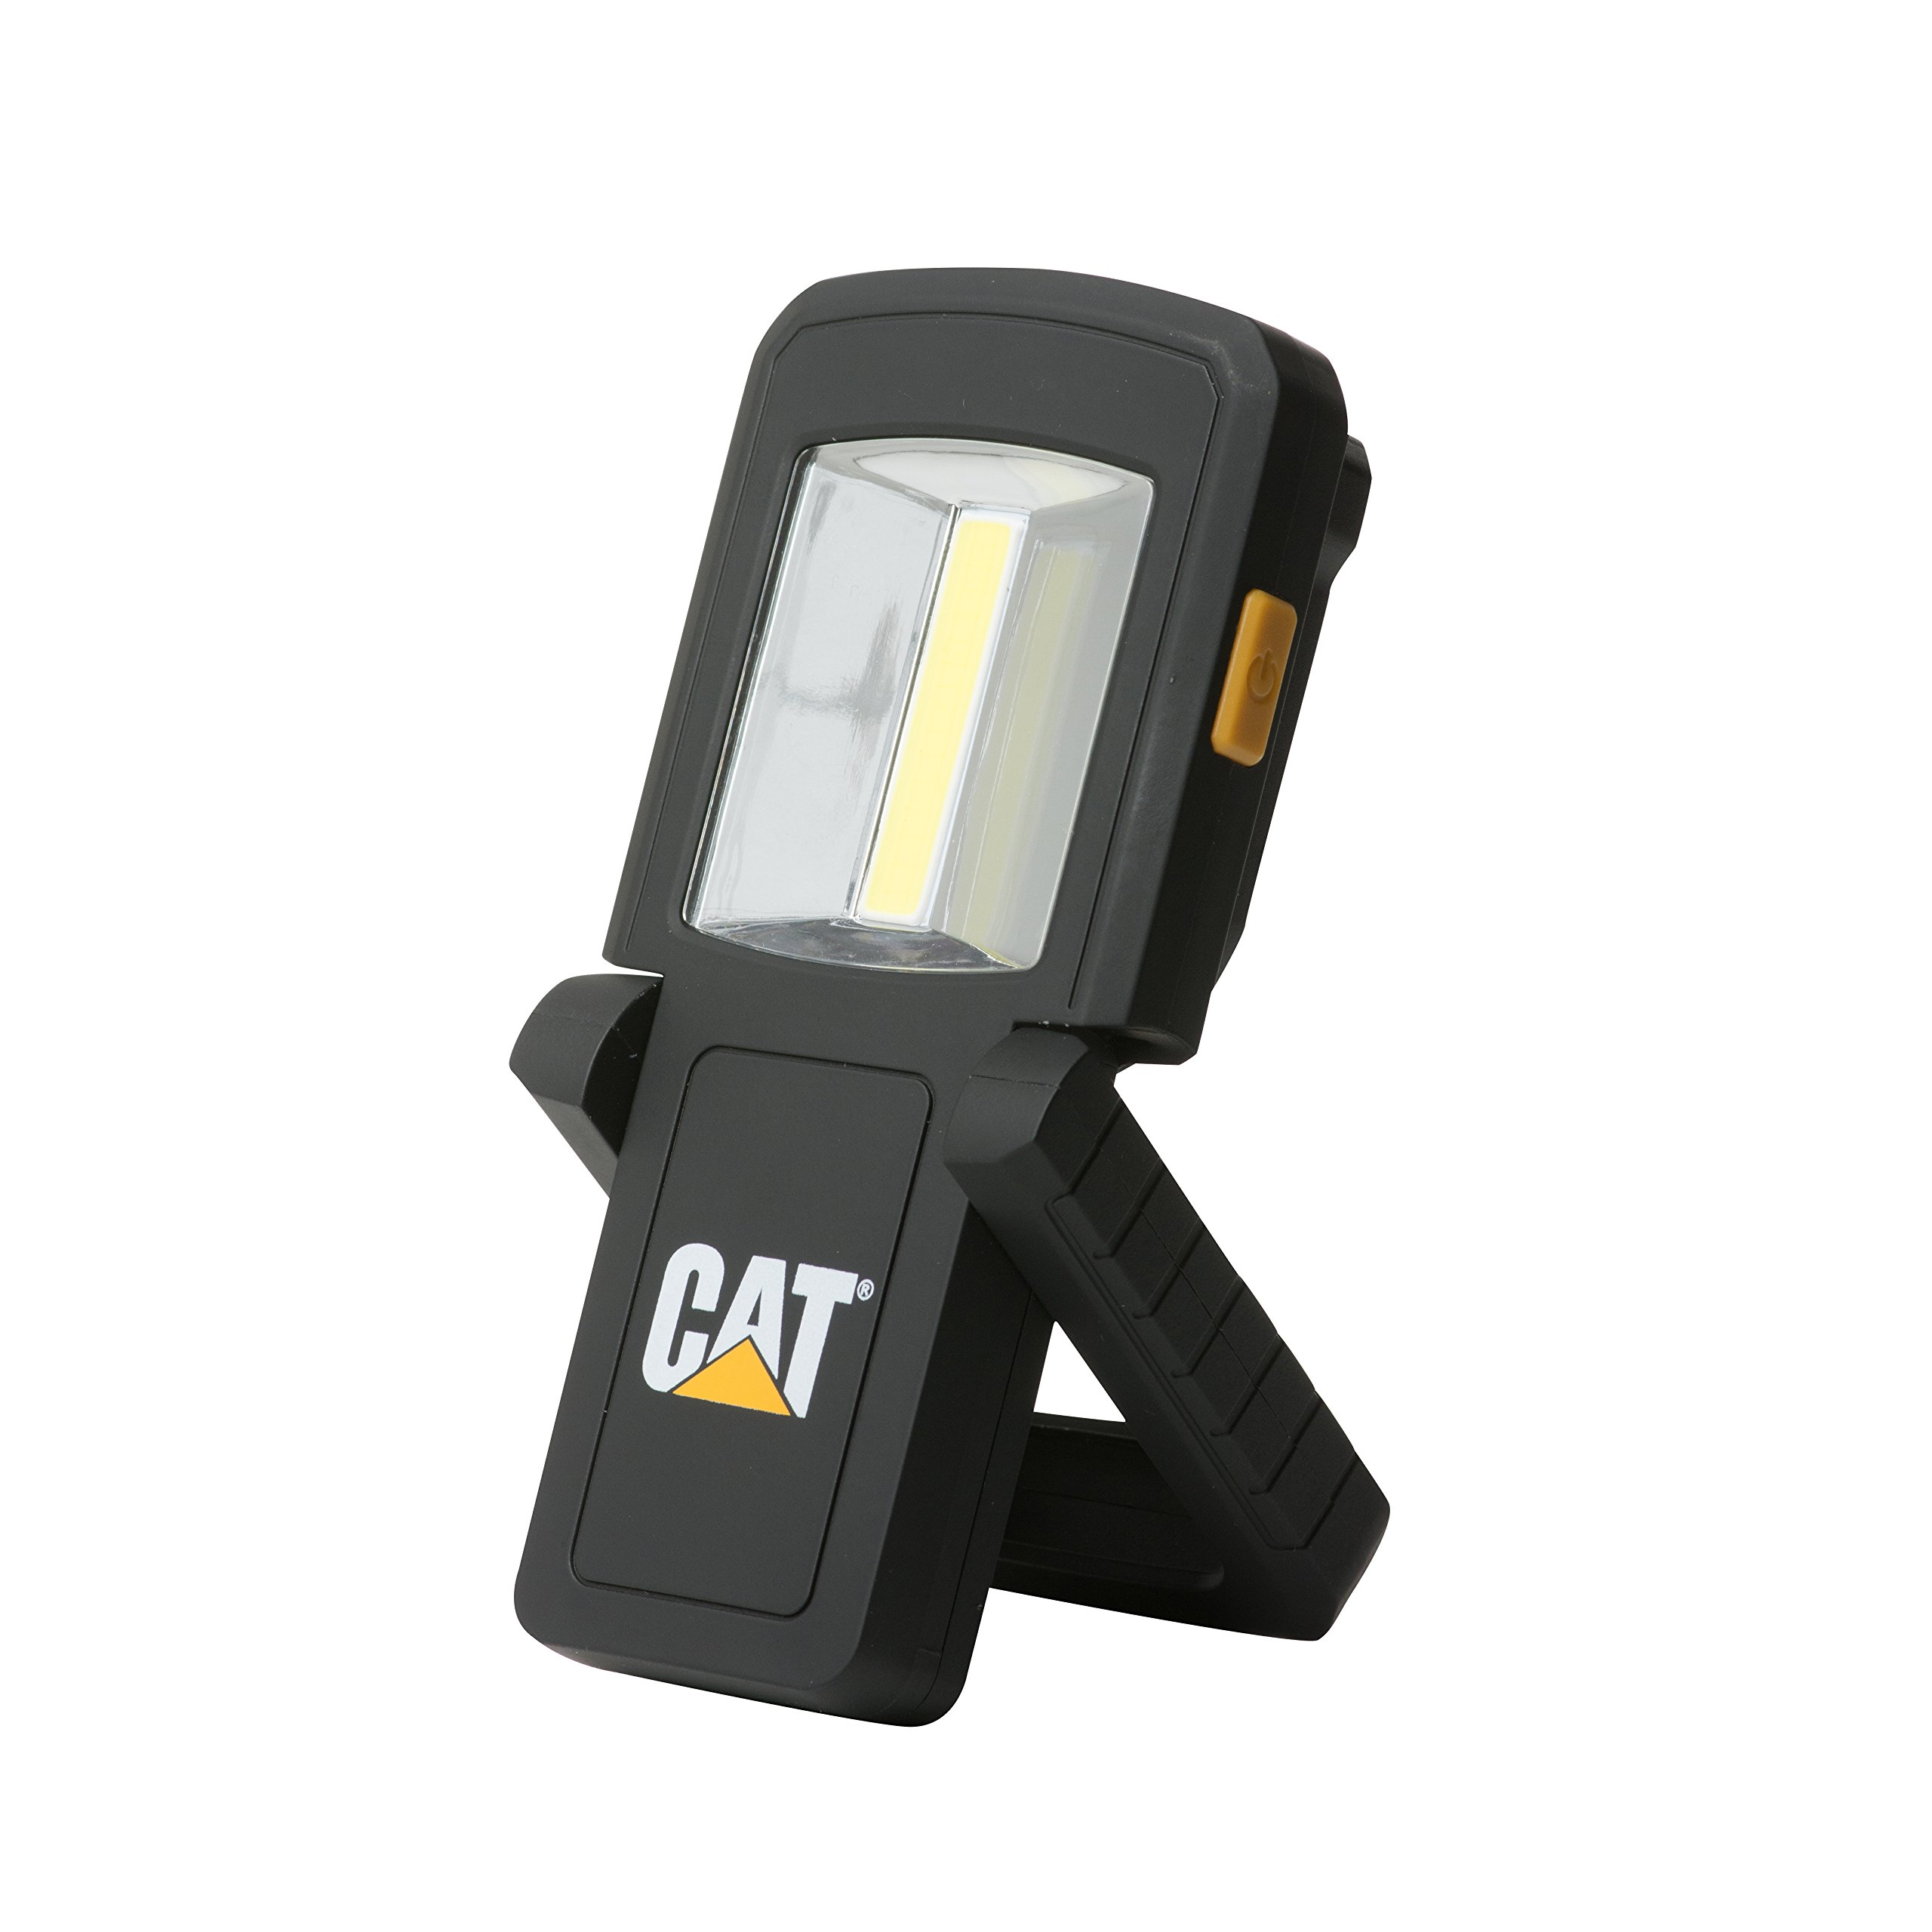 Cat CT3510 Dual Beam Work Light - 165 Lumen COB LED Front Flood Panel, 50 Lumen Top Beam Hands-Free Light, Black by Caterpillar